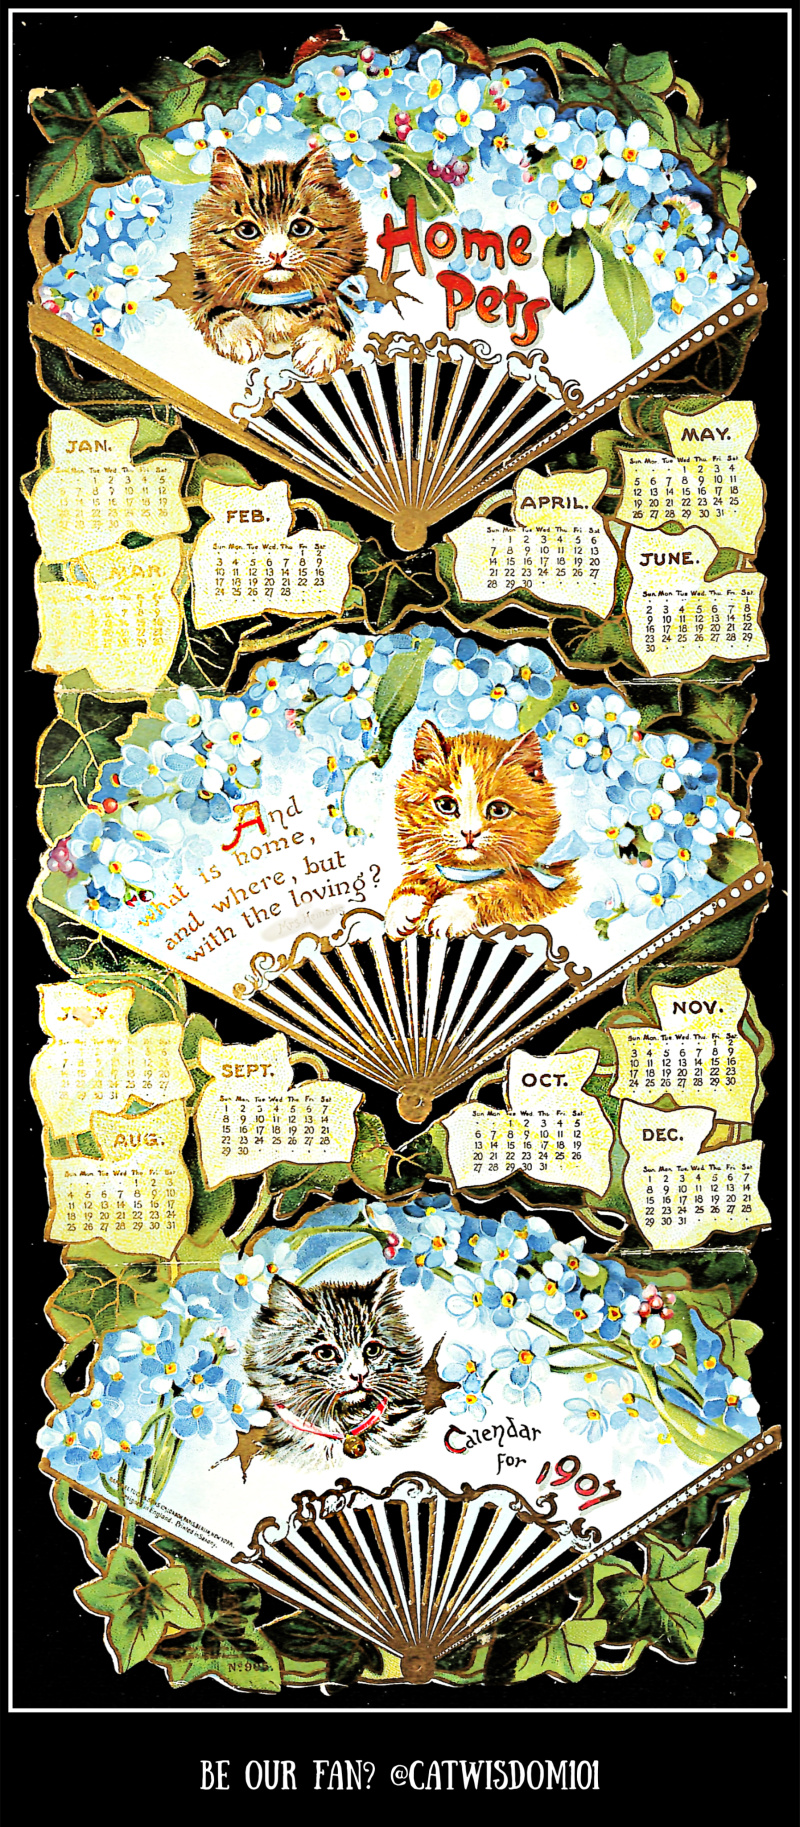 1907_fans_kittens_calendar_catwisdom101 Life Changing Super Full Moon Astrology Plus Creative Vintage Cat Calendars